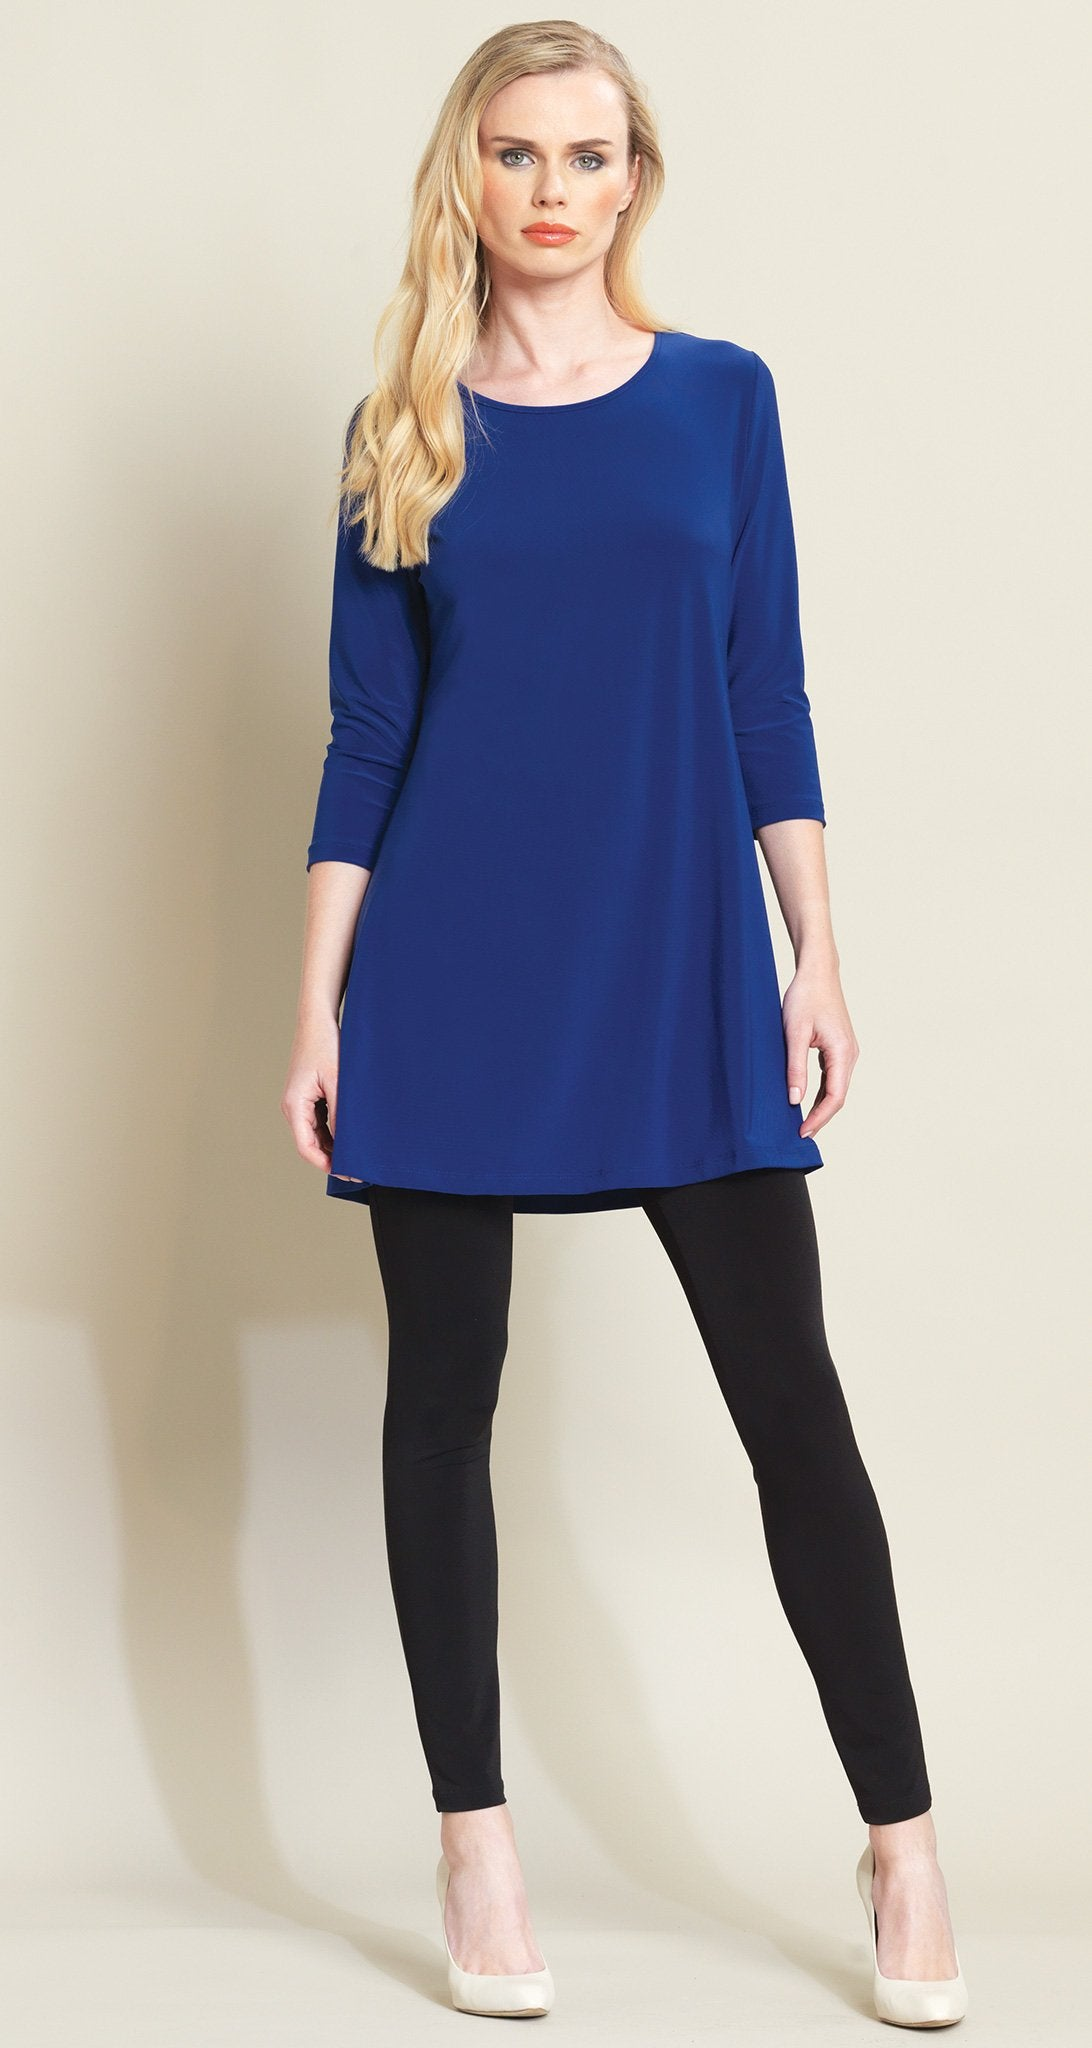 Square Cut Out Solid Tunic - Cobalt - Final Sale